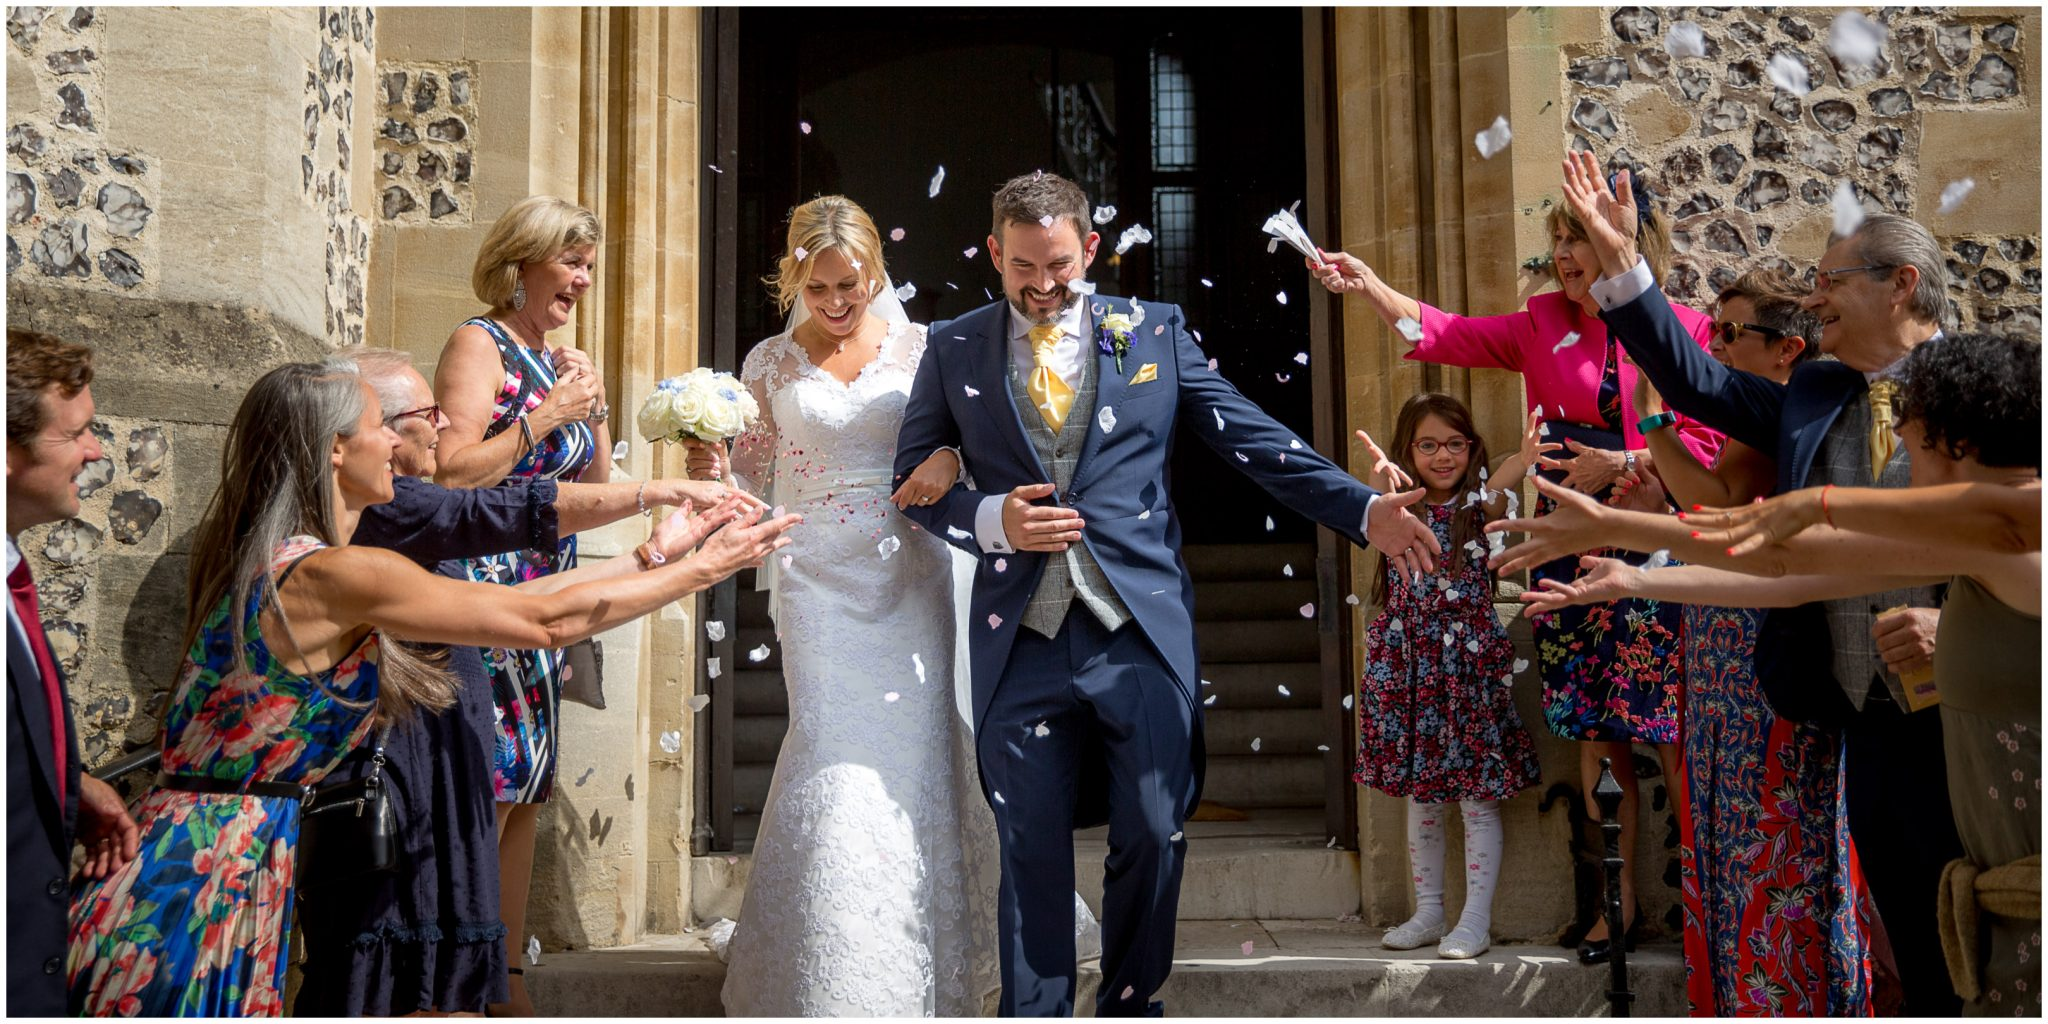 The bride and groom emerge from the registry office to be showered with confetti